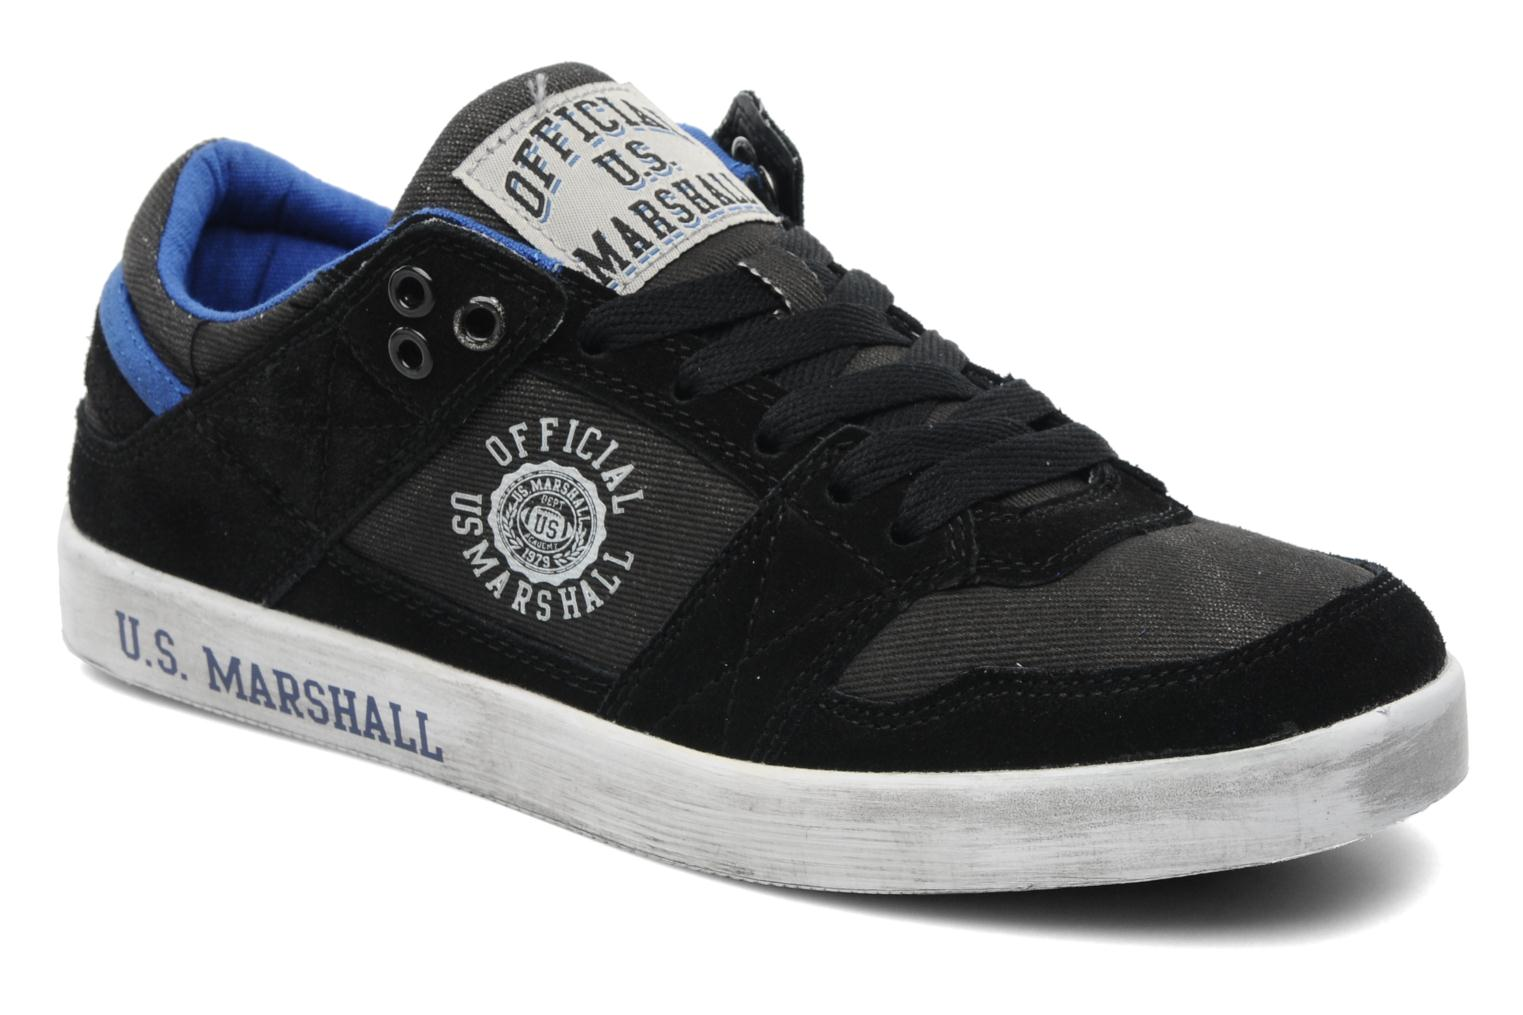 Sneakers Dasty M by US Marshall